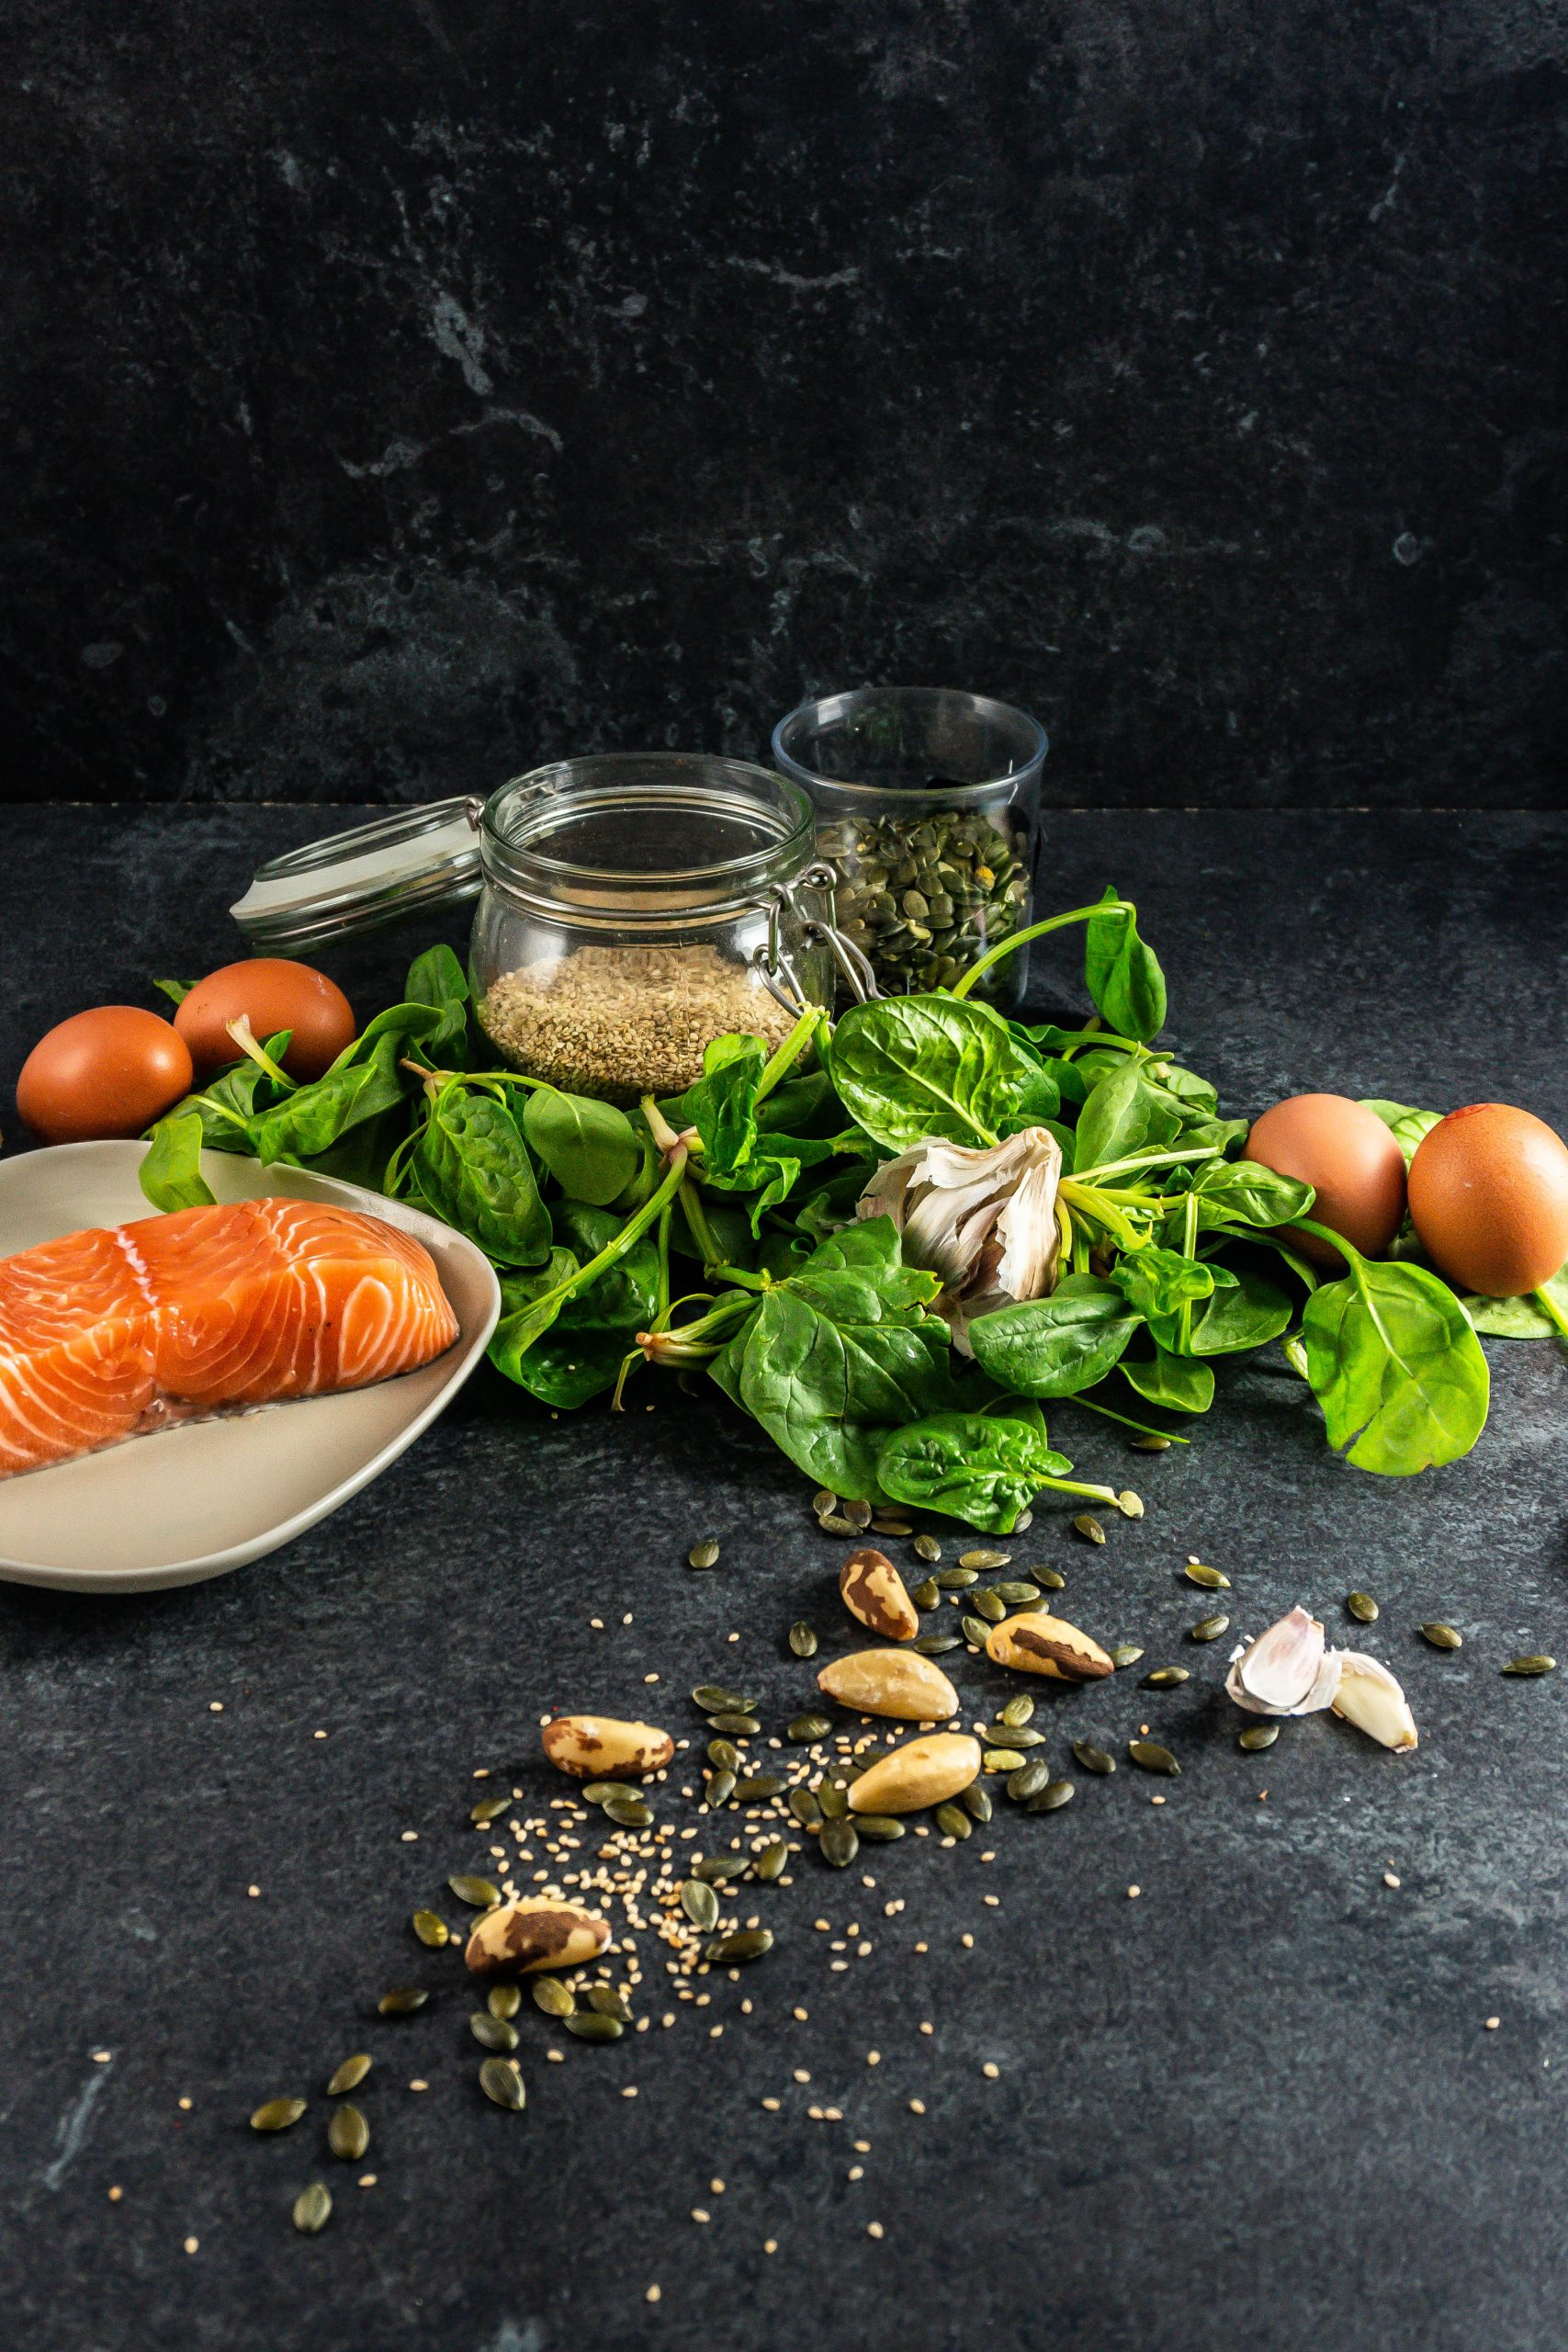 Salmon, eggs, spinach, garlic, and nuts and seeds on on a dark background